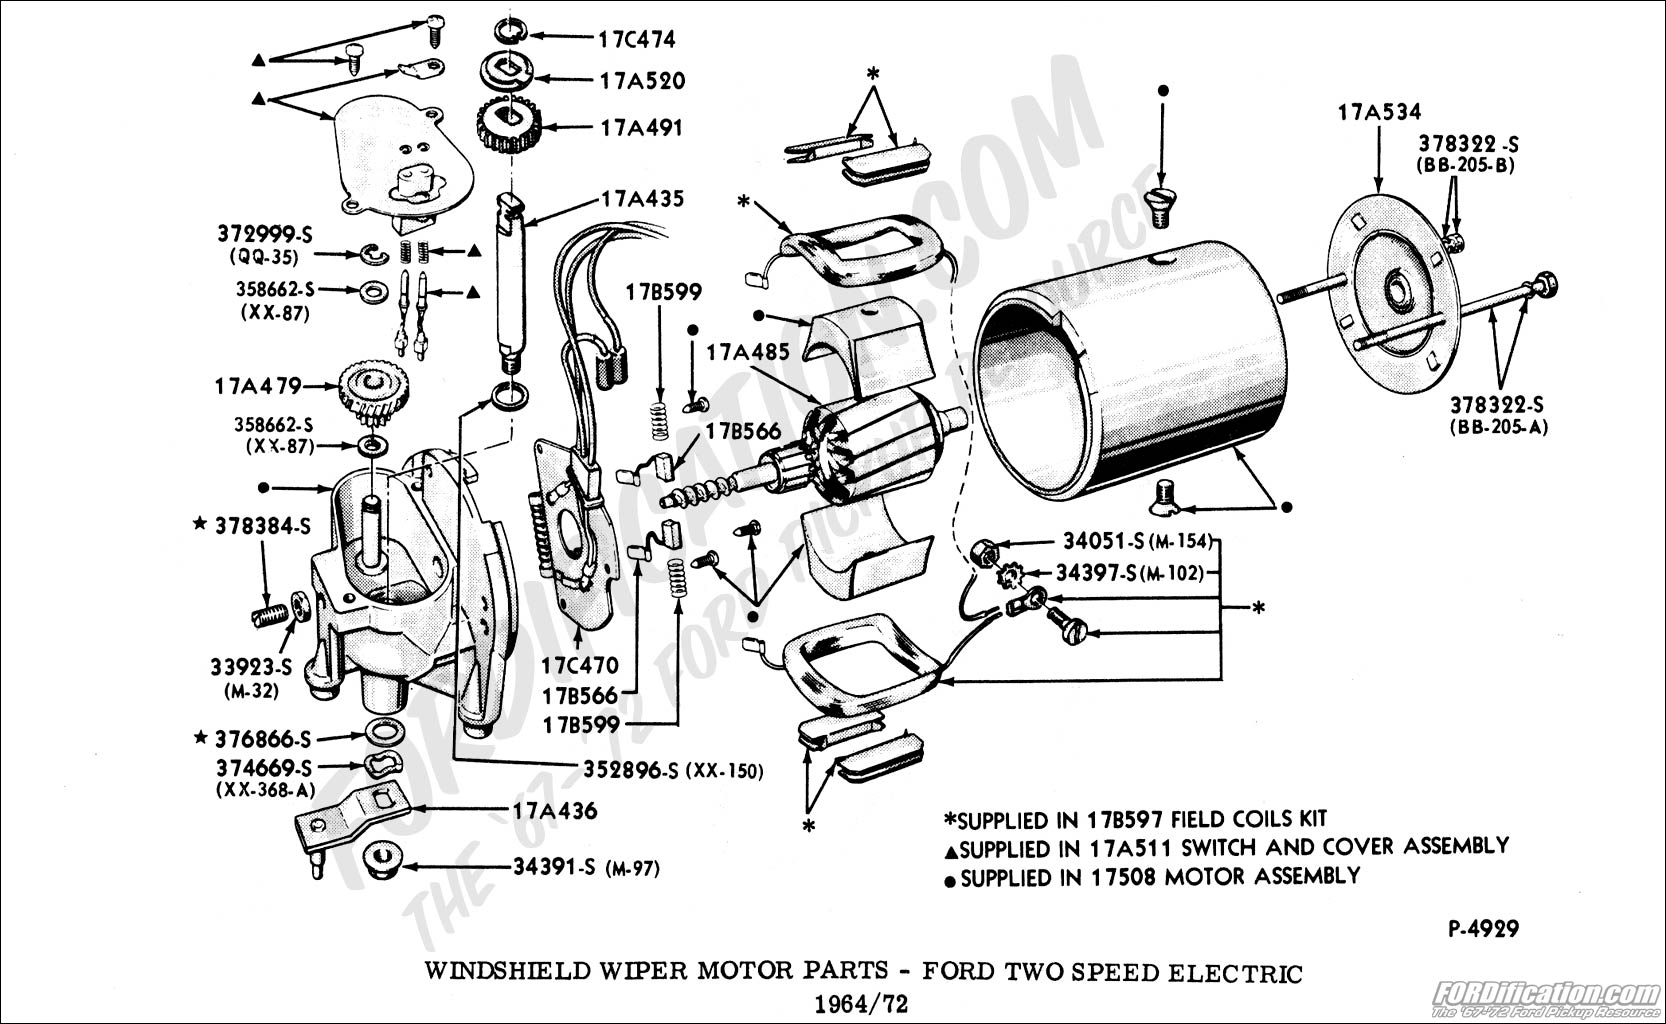 Ford Truck Technical Drawings And Schematics Section I Fender Mustang Wiring Diagram Free Download Schematic Manual Transmission 1024 X 307 72k Windshield Wiper Motor Parts